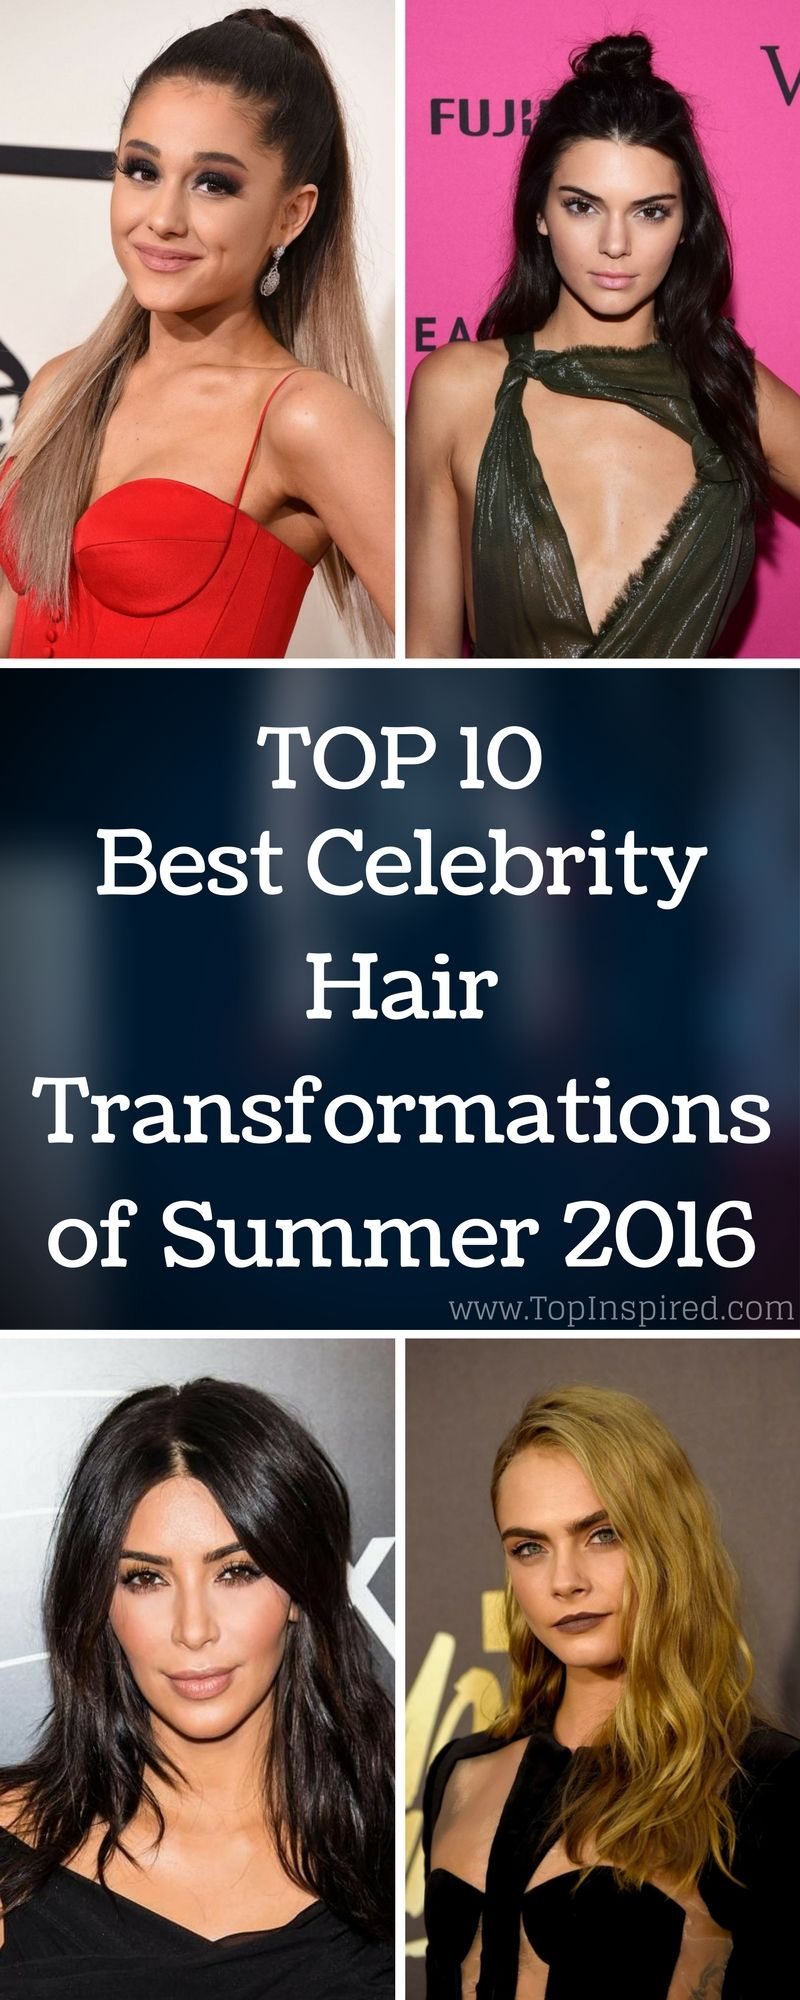 The trends change each year and celebrities are usually the ones setting them. #HairStyle via @Topinspired